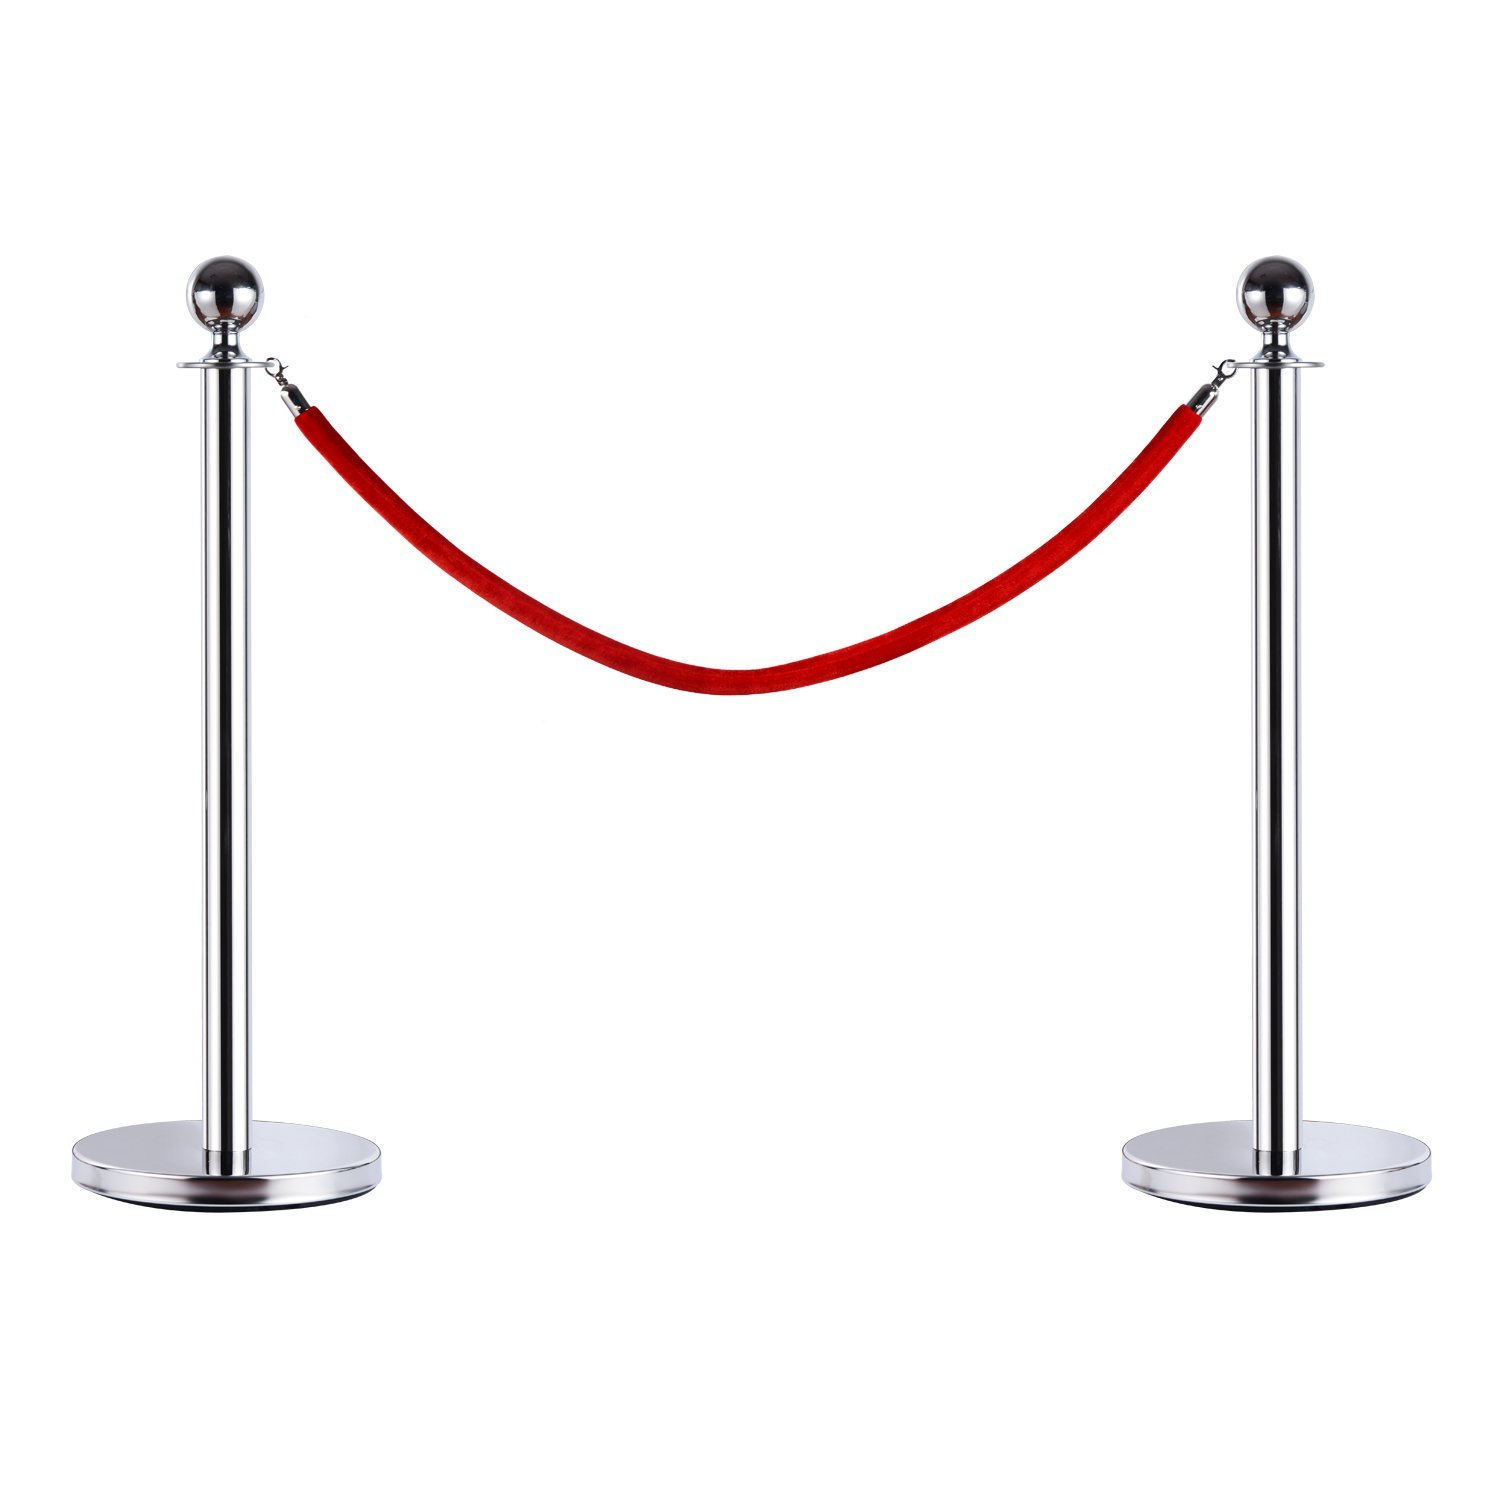 HOMCOM Transenne Eliminates Code Separacode Bollard Bounding With Strings Red Steel Ф 32x95 CM